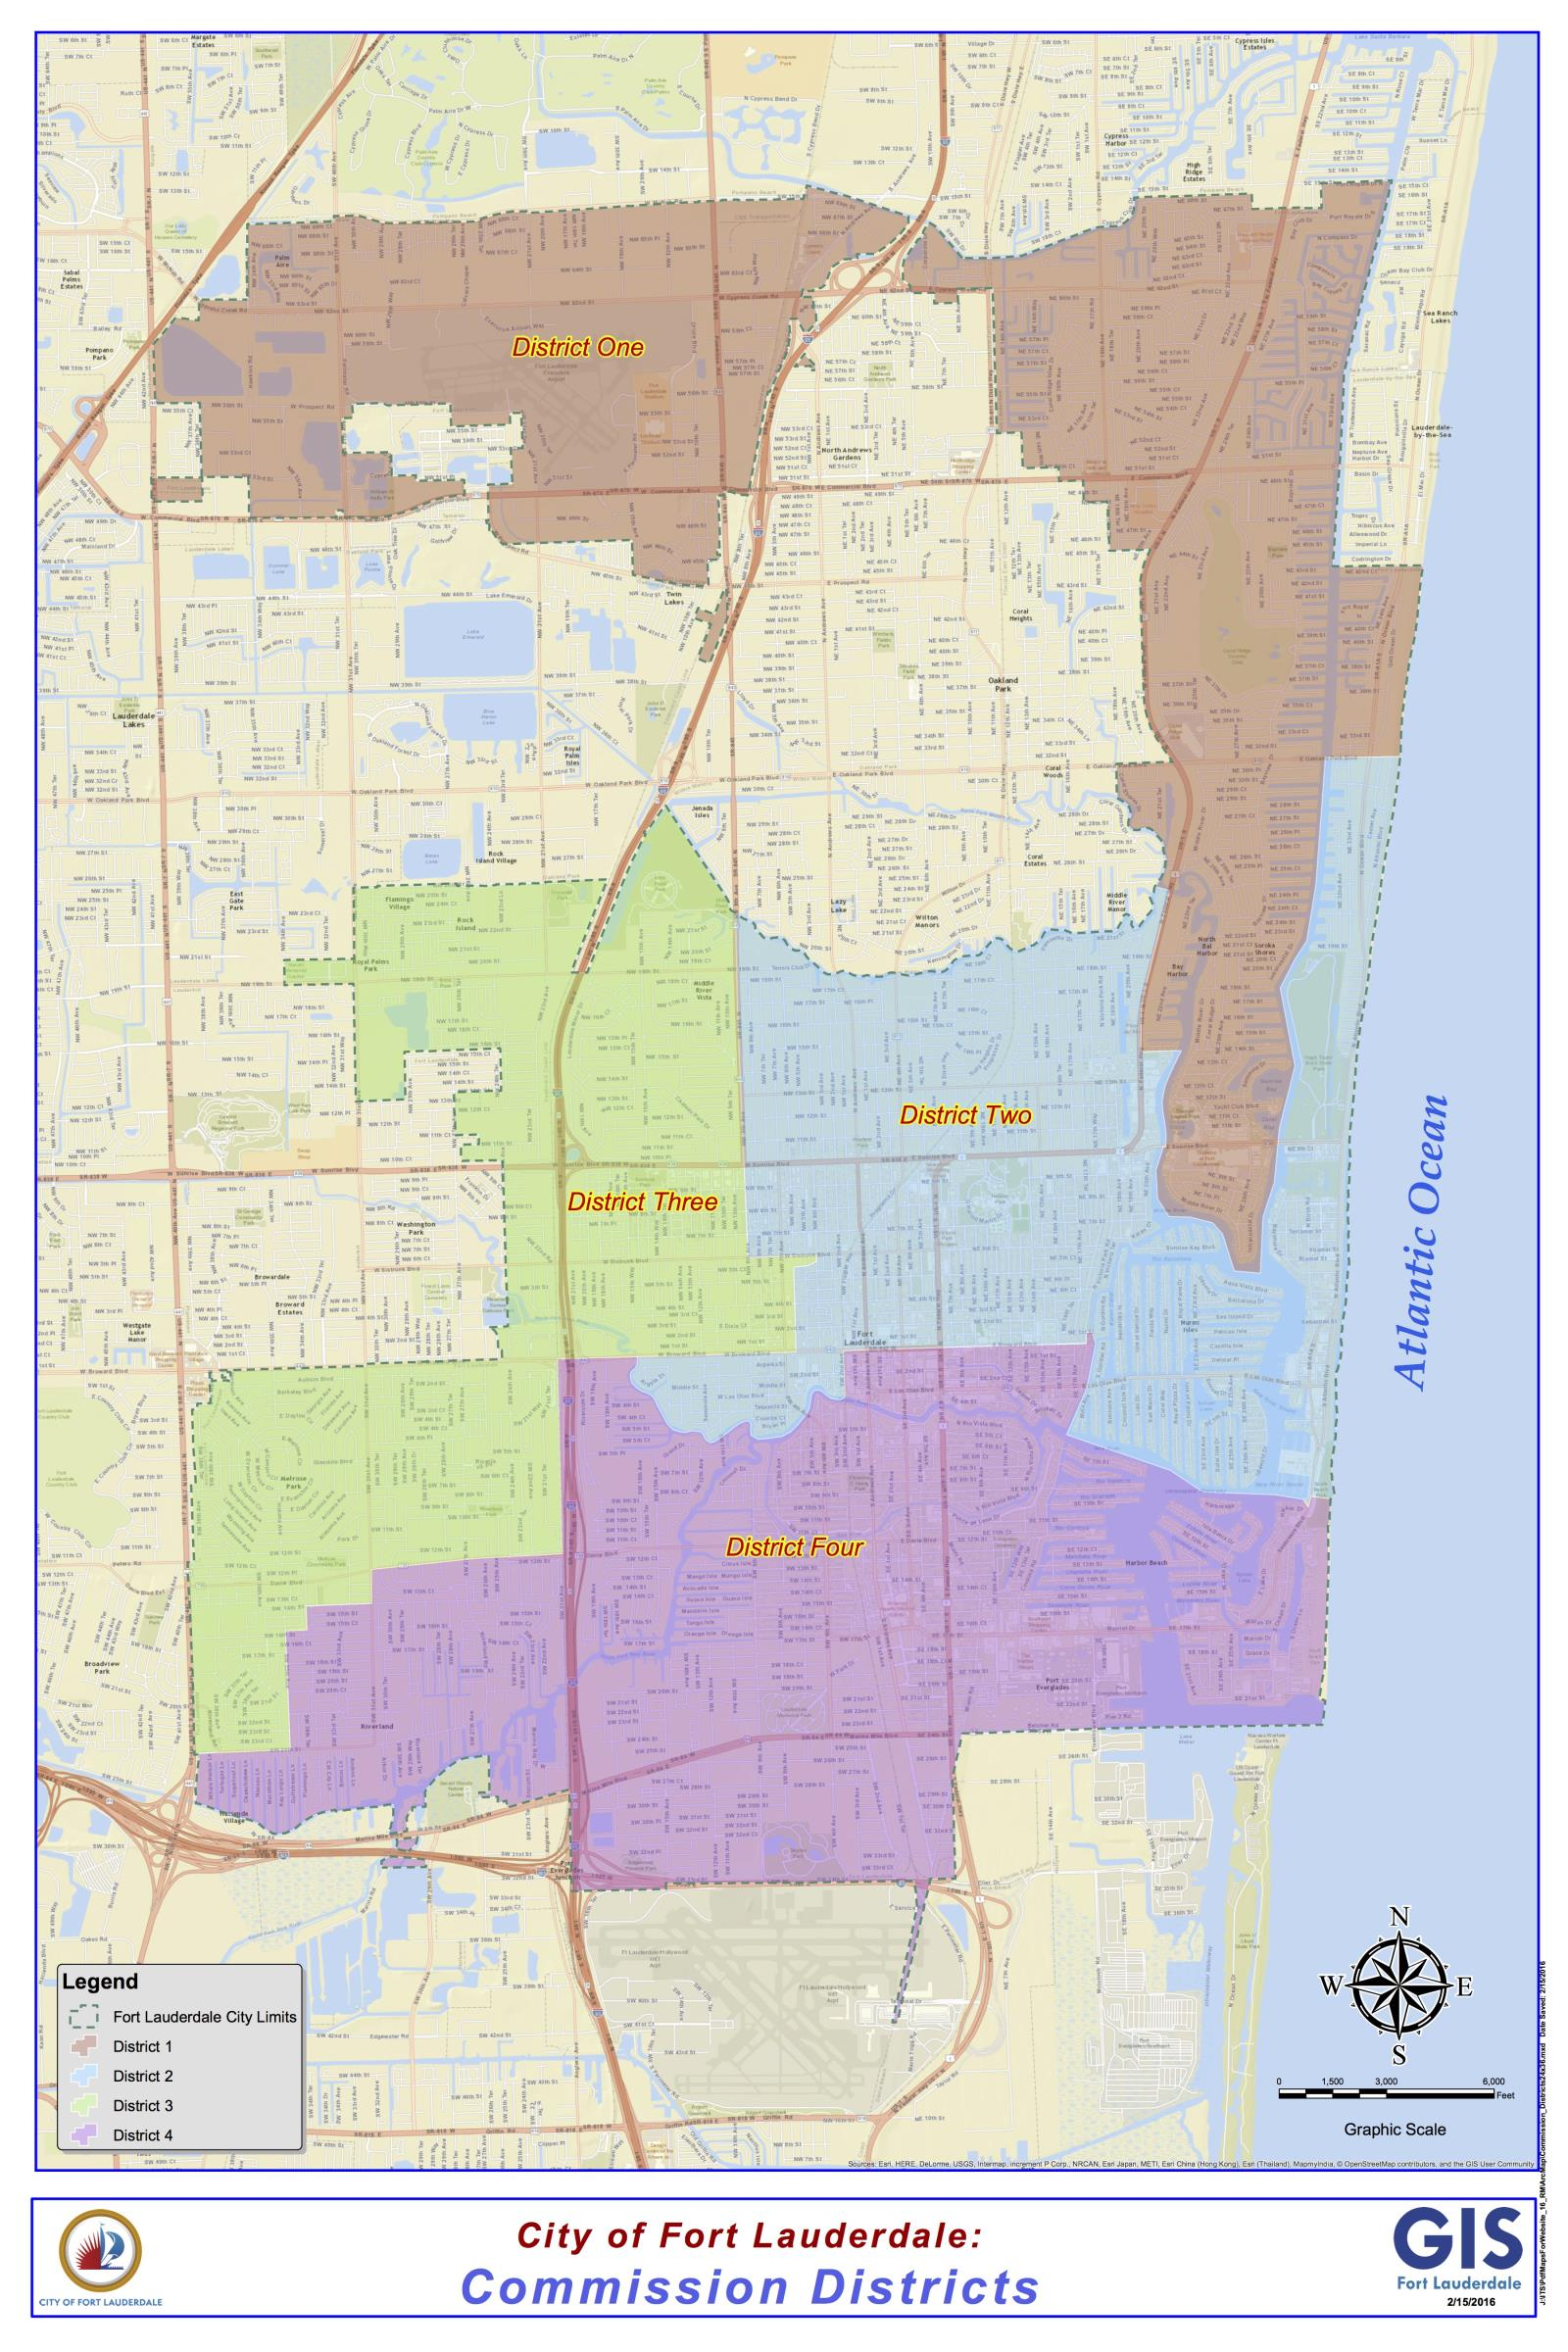 Commission Districts (24x36)Fort Lauderdale